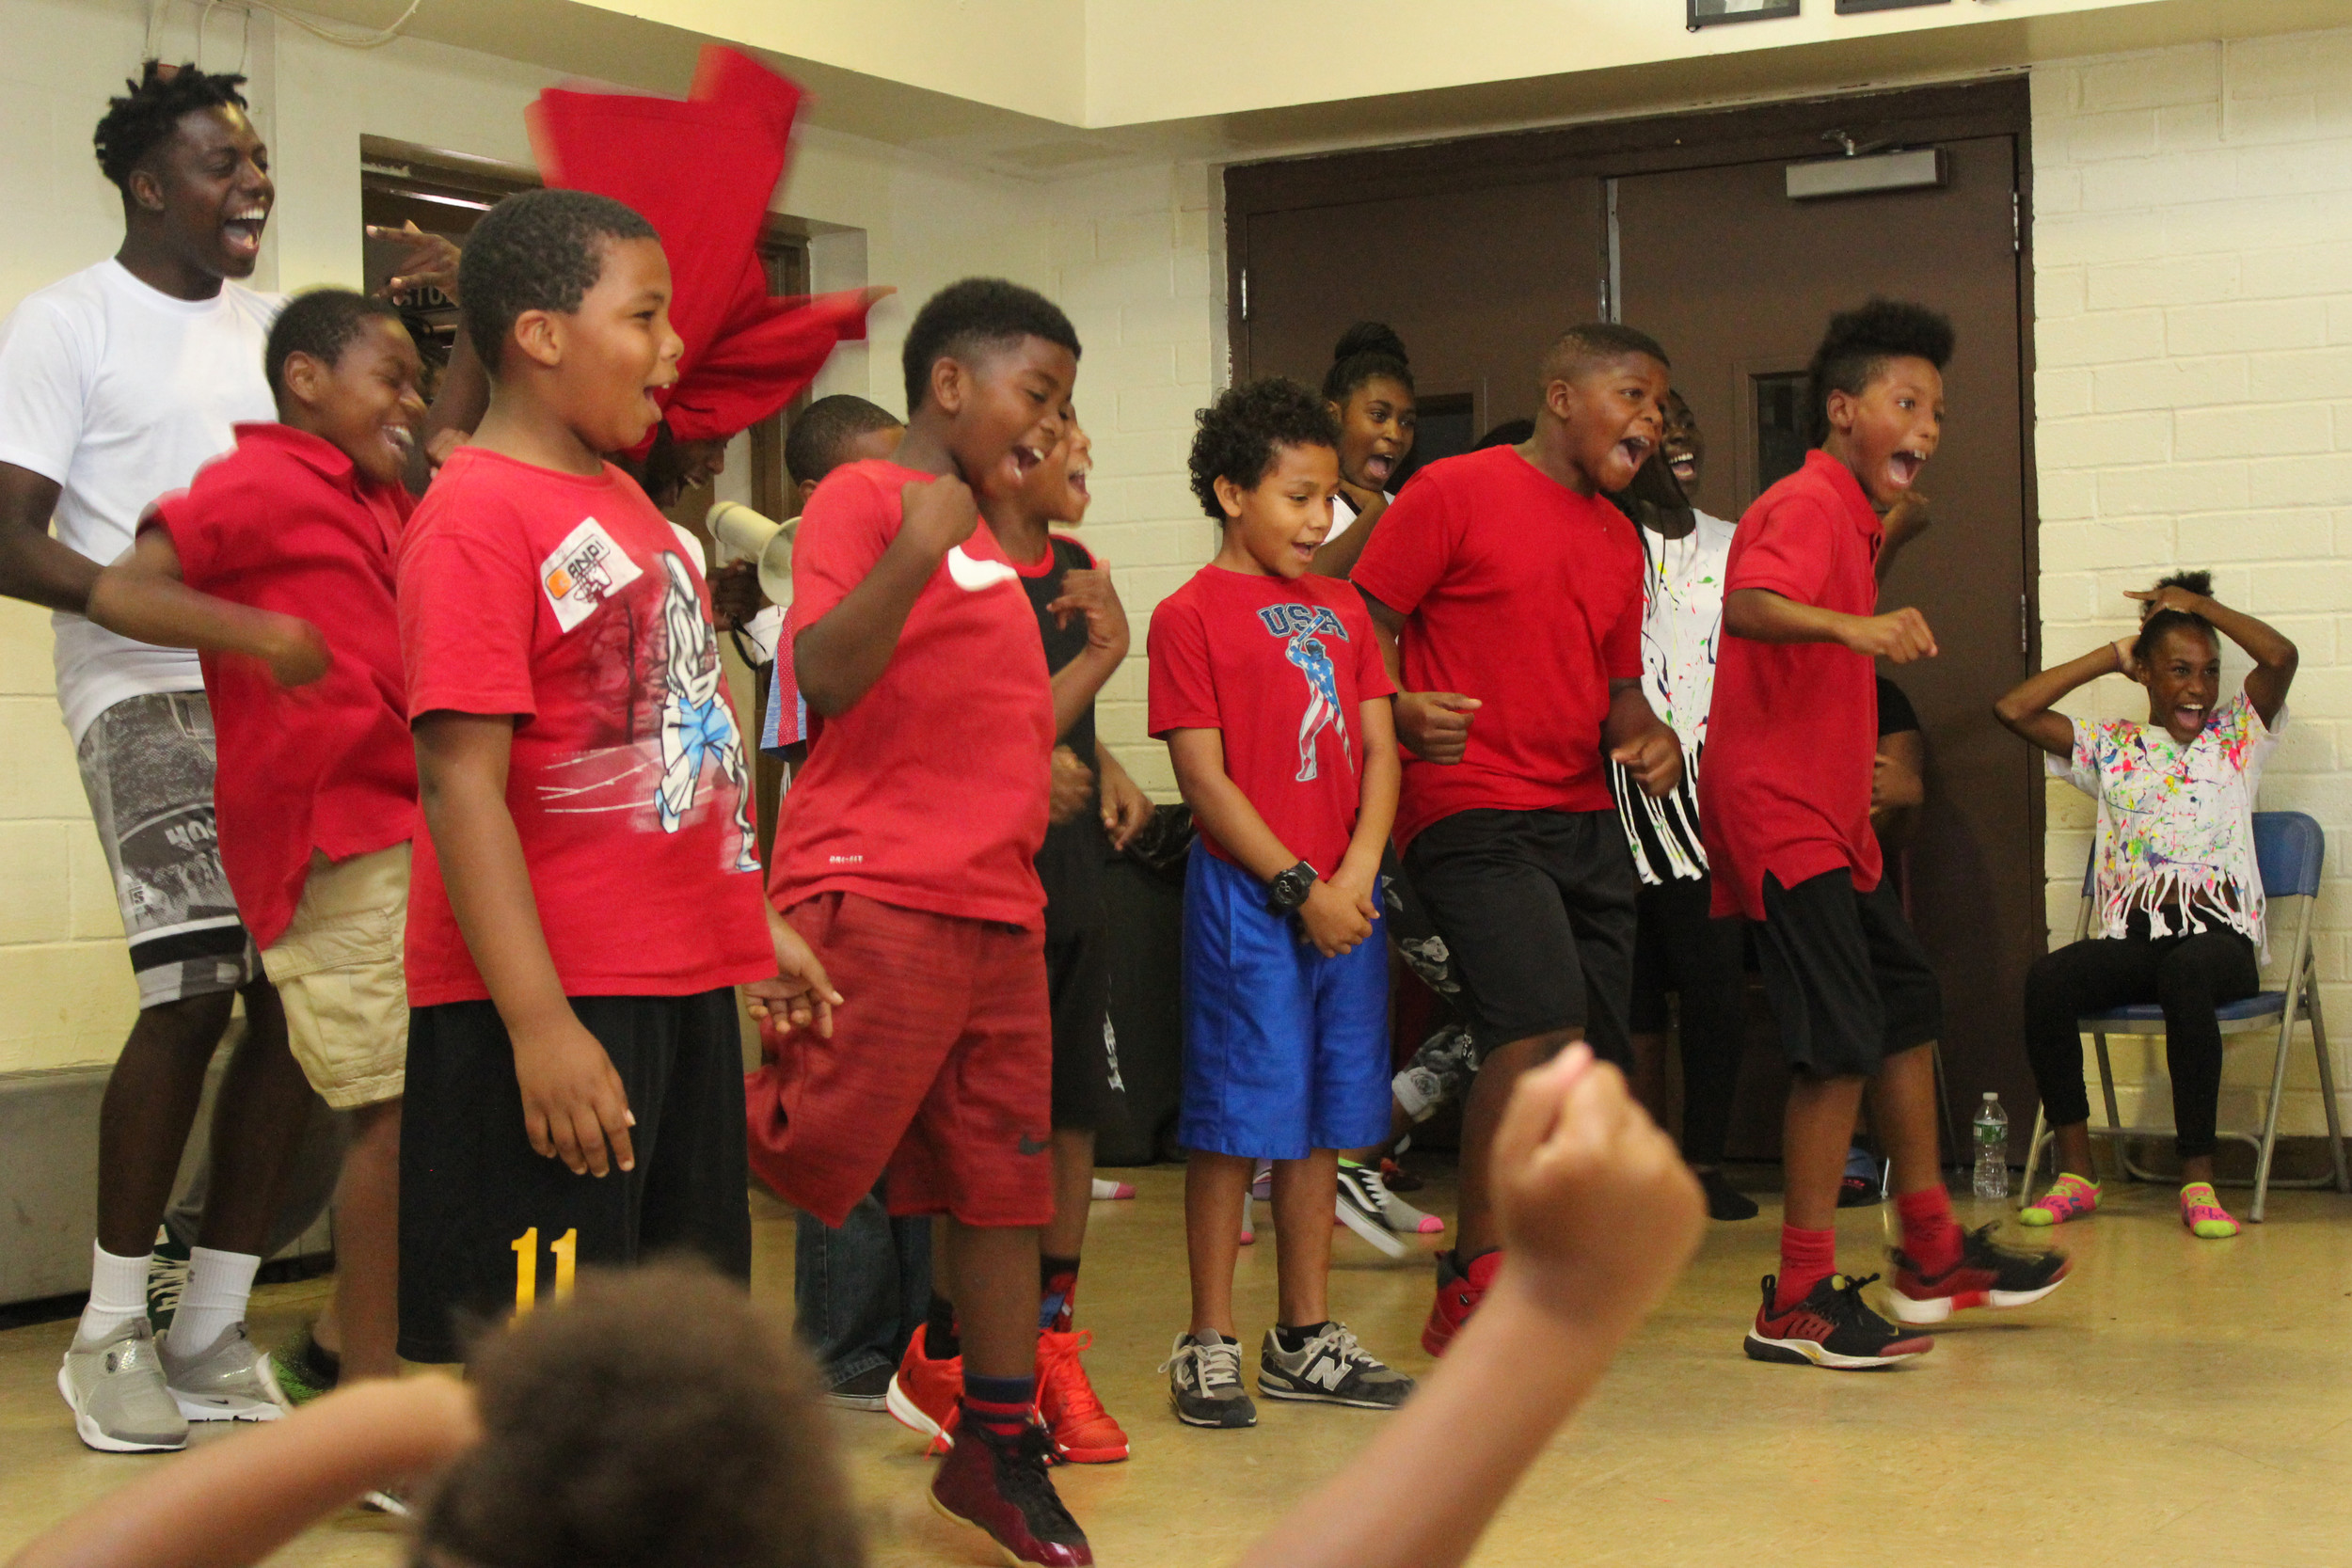 Boys at the MLK Center's summer camp program cheered on their friends during a dance off.